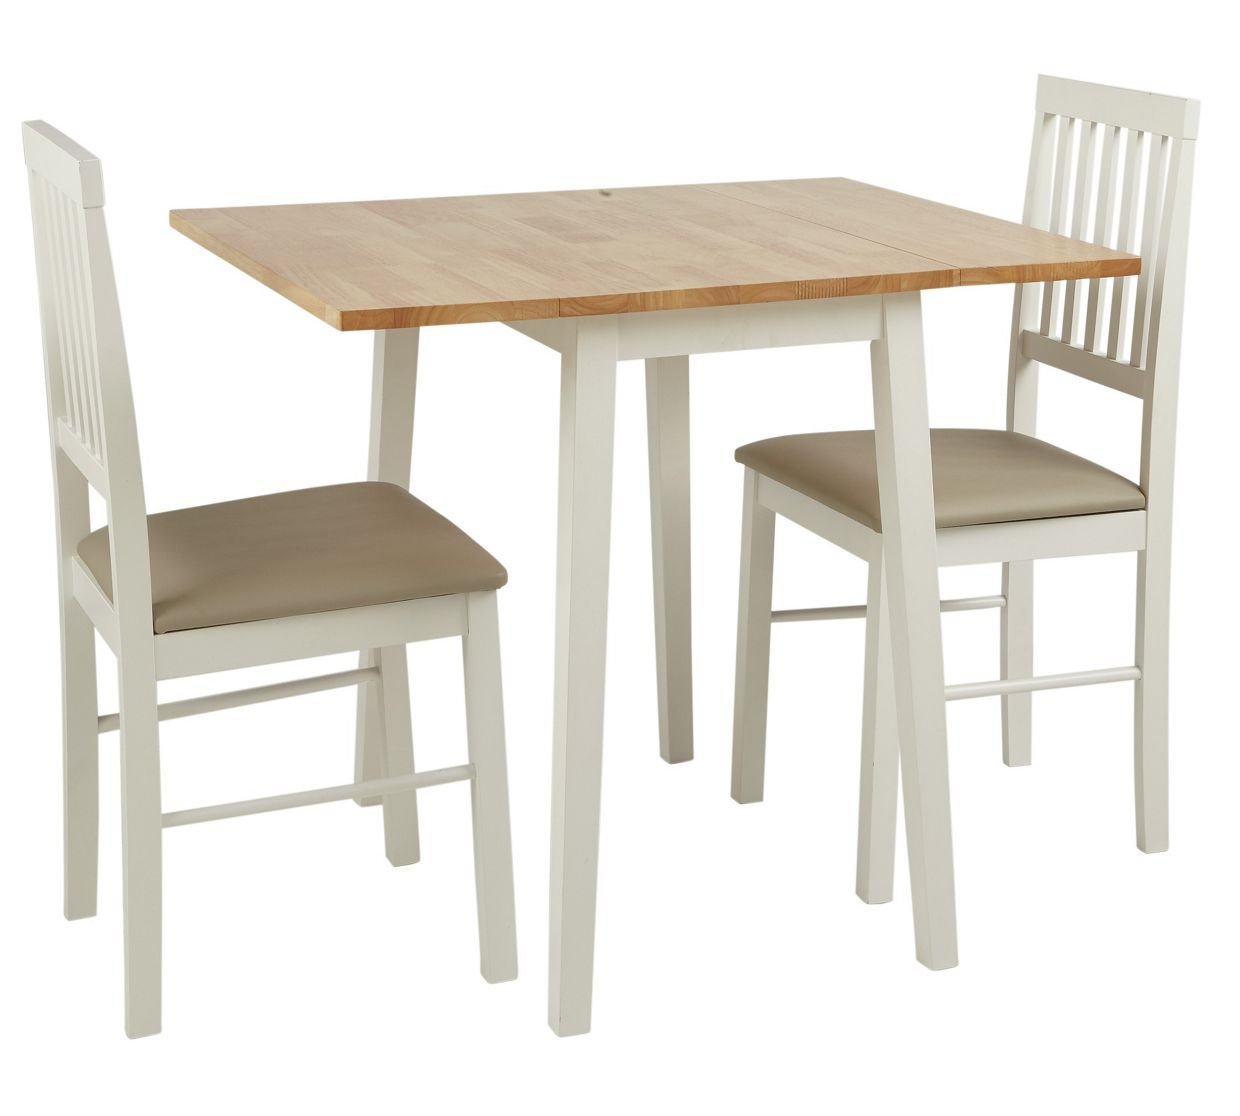 HOME Kendall Drop Leaf Table And 2 Dining Chairs   Two Tone: Amazon.co.uk:  Kitchen U0026 Home